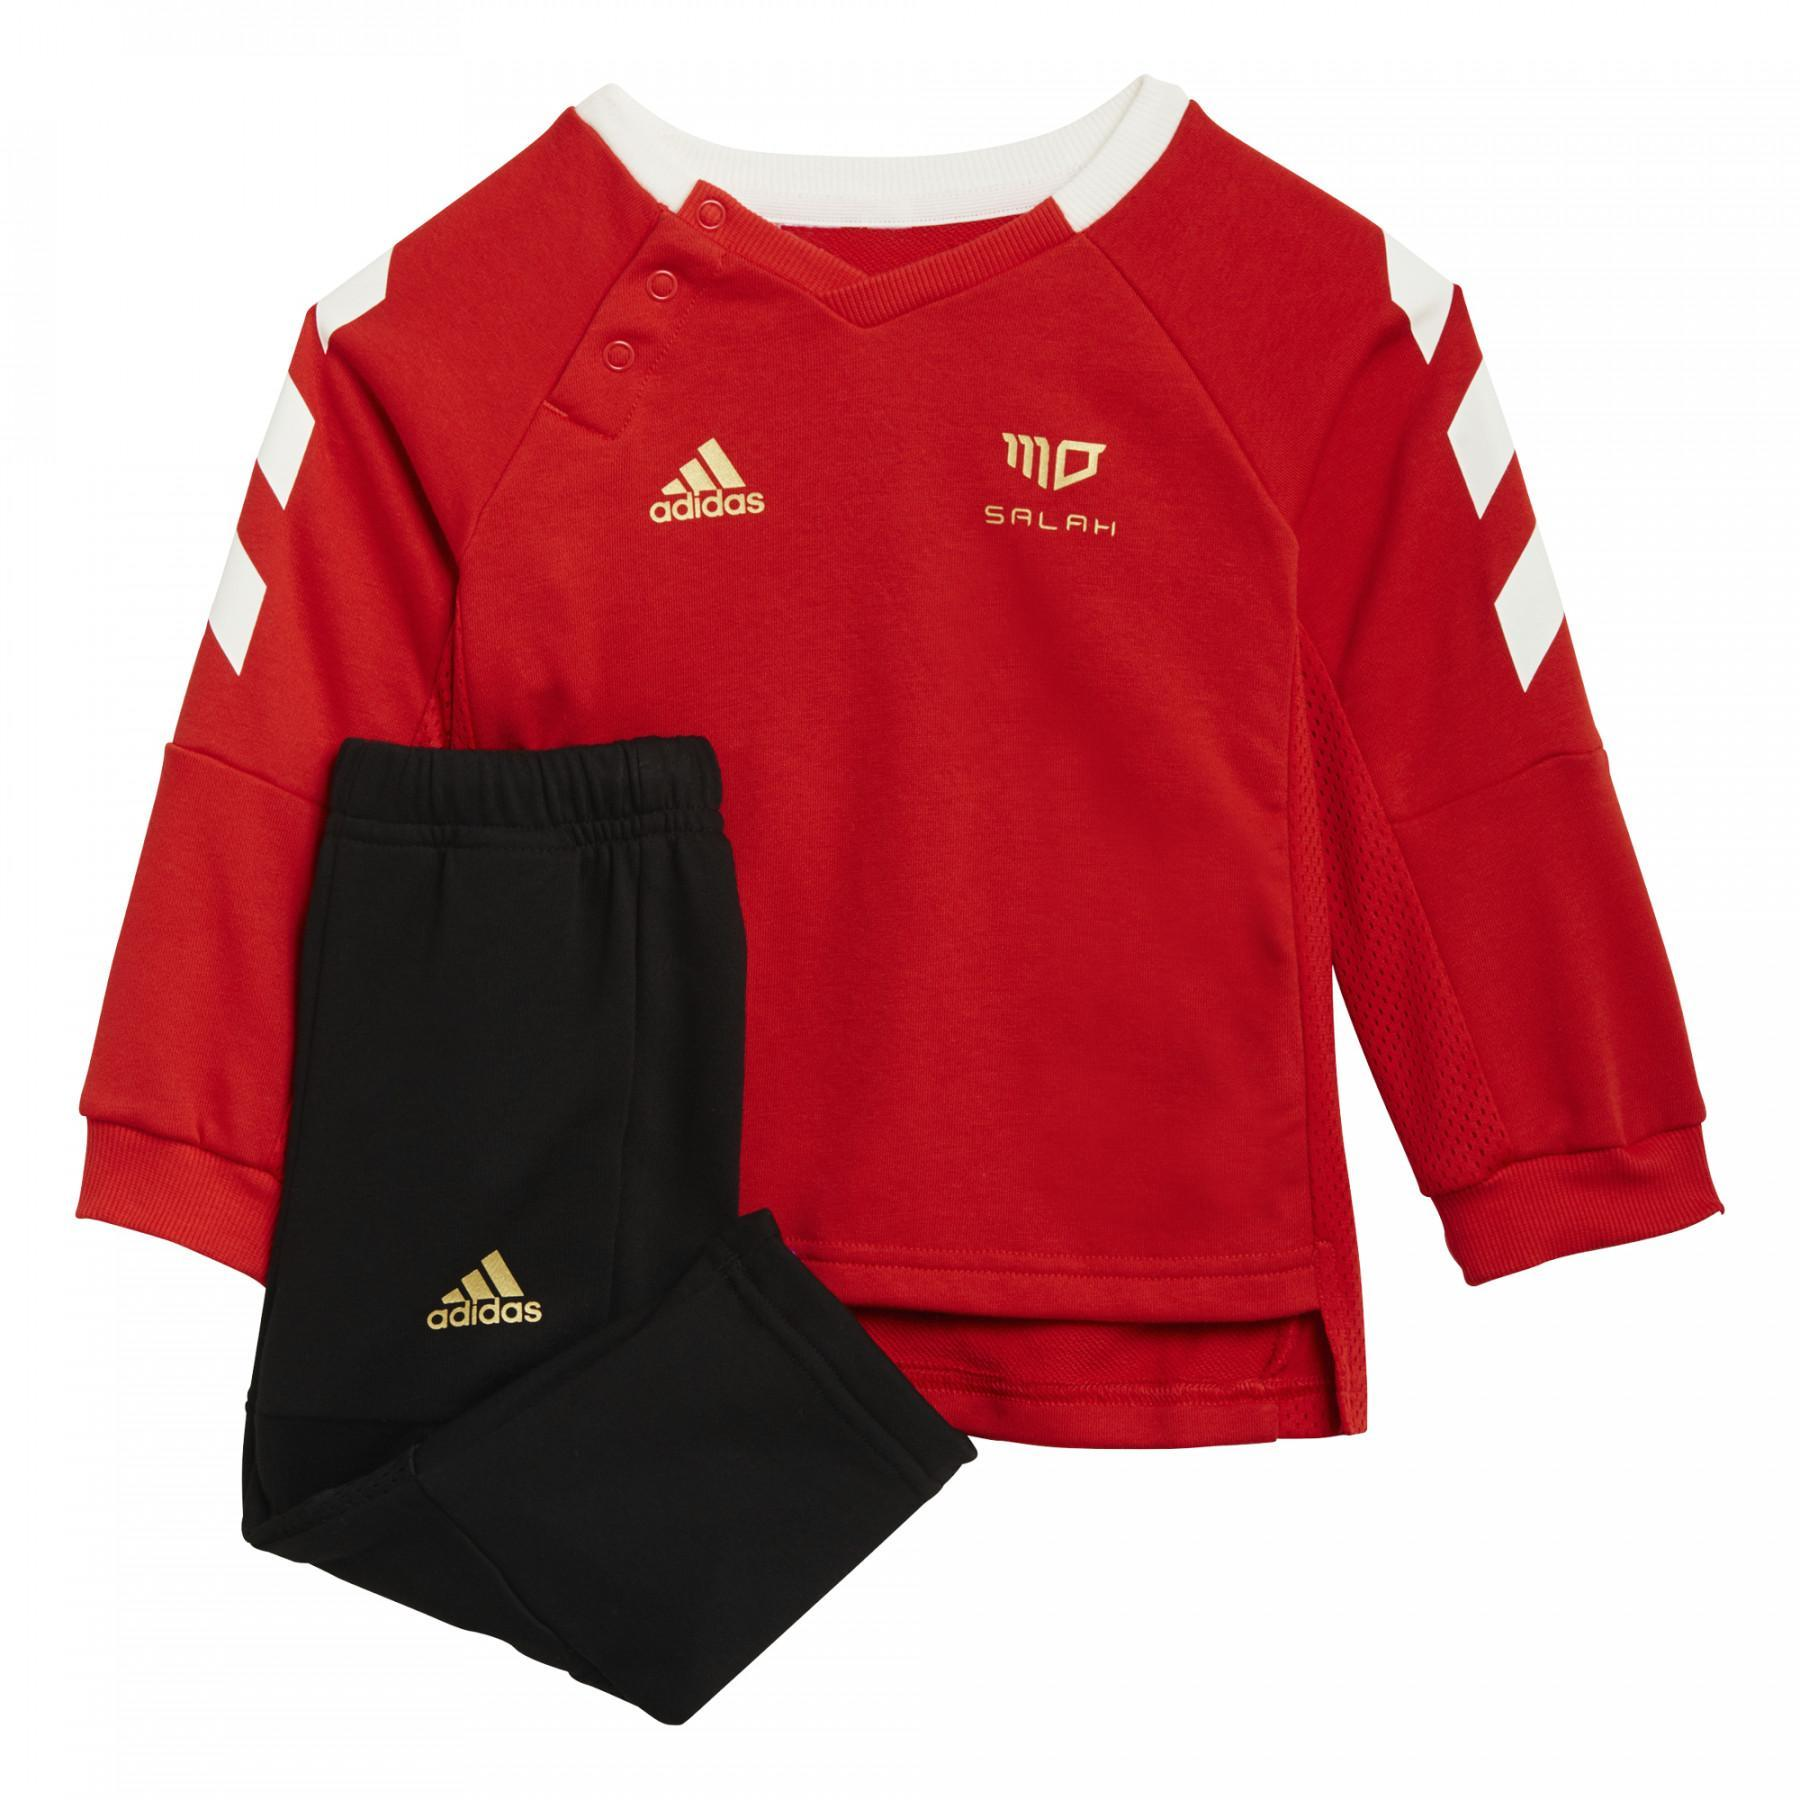 adidas Salah Football-Inspired Jogger Kids Set